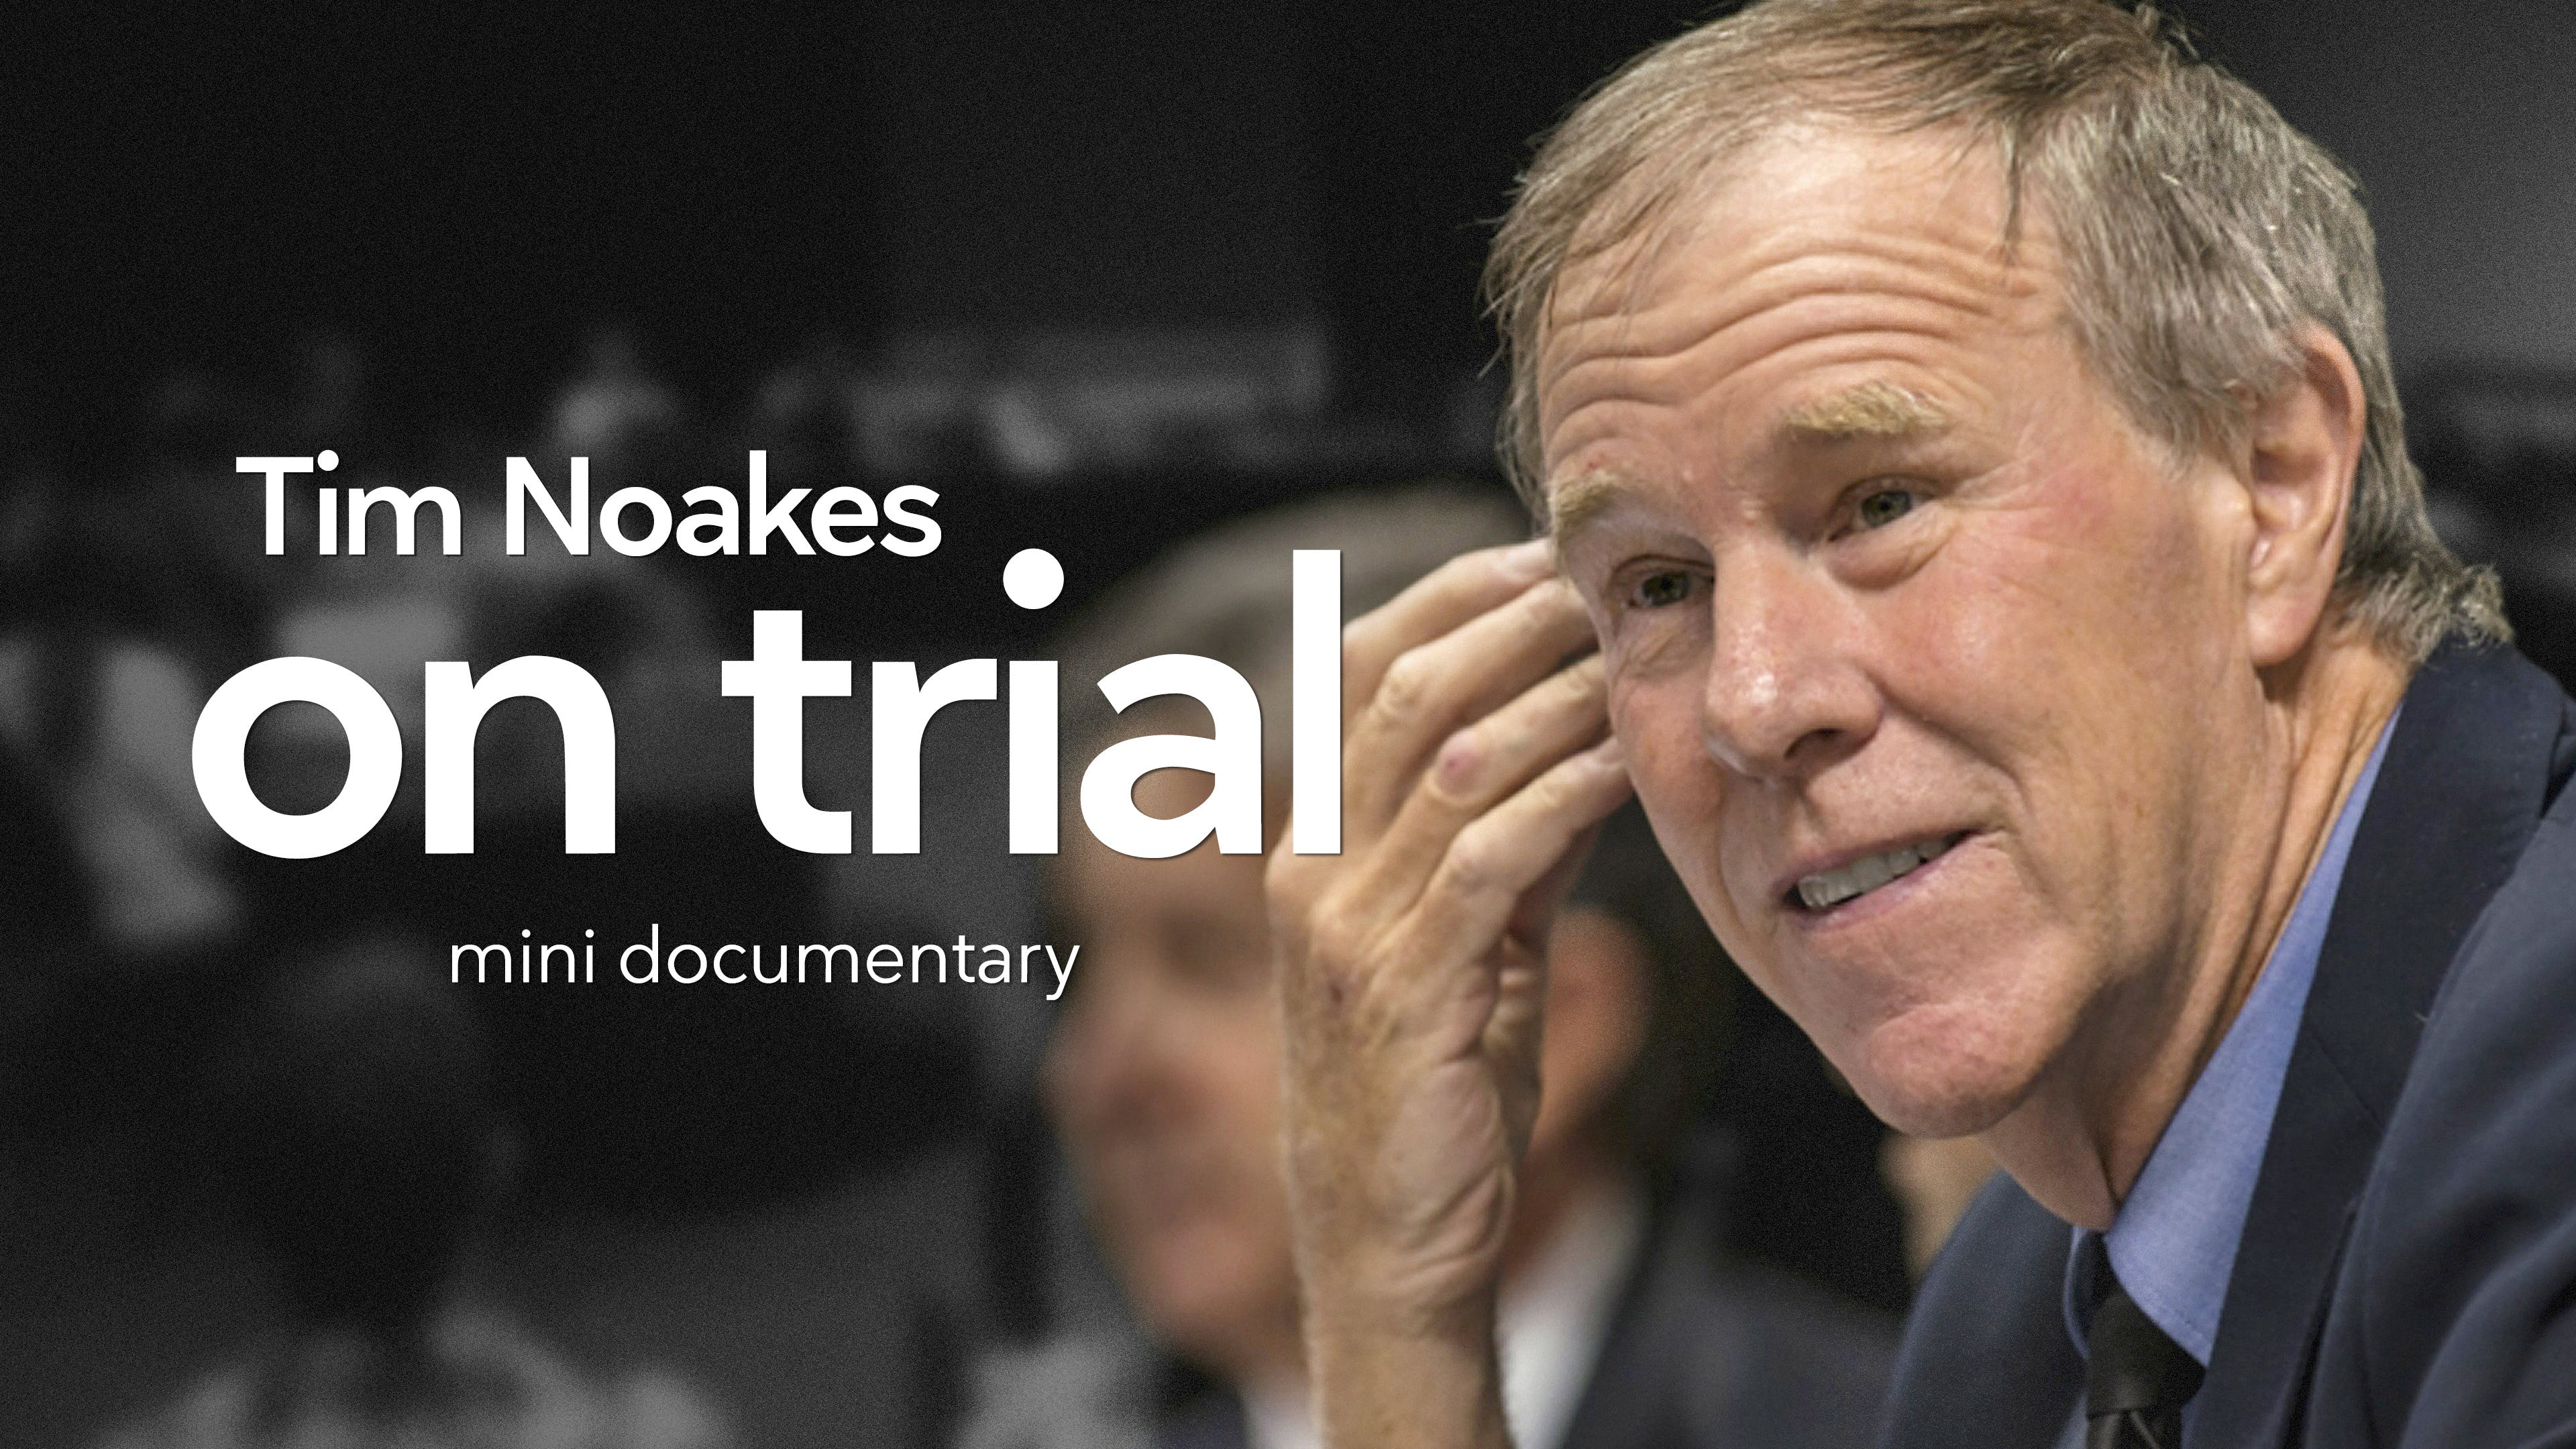 Tim Noakes on trial